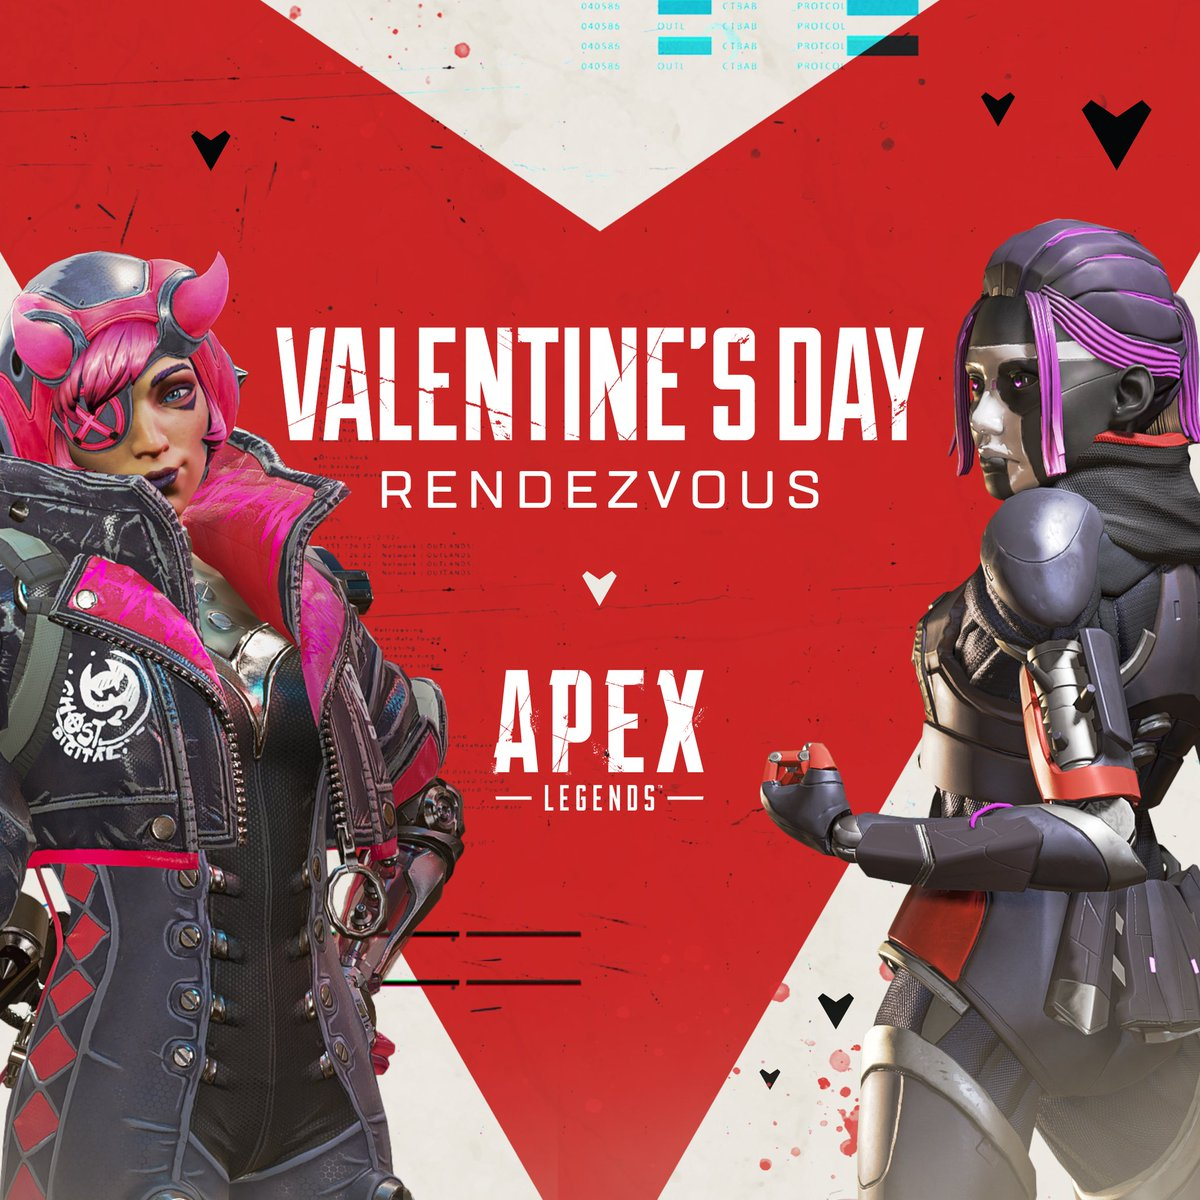 Let's try this again. Valentine's Day Rendezvous, including the Duos limited-time mode is now, officially, live through Feb 12-19. 💘